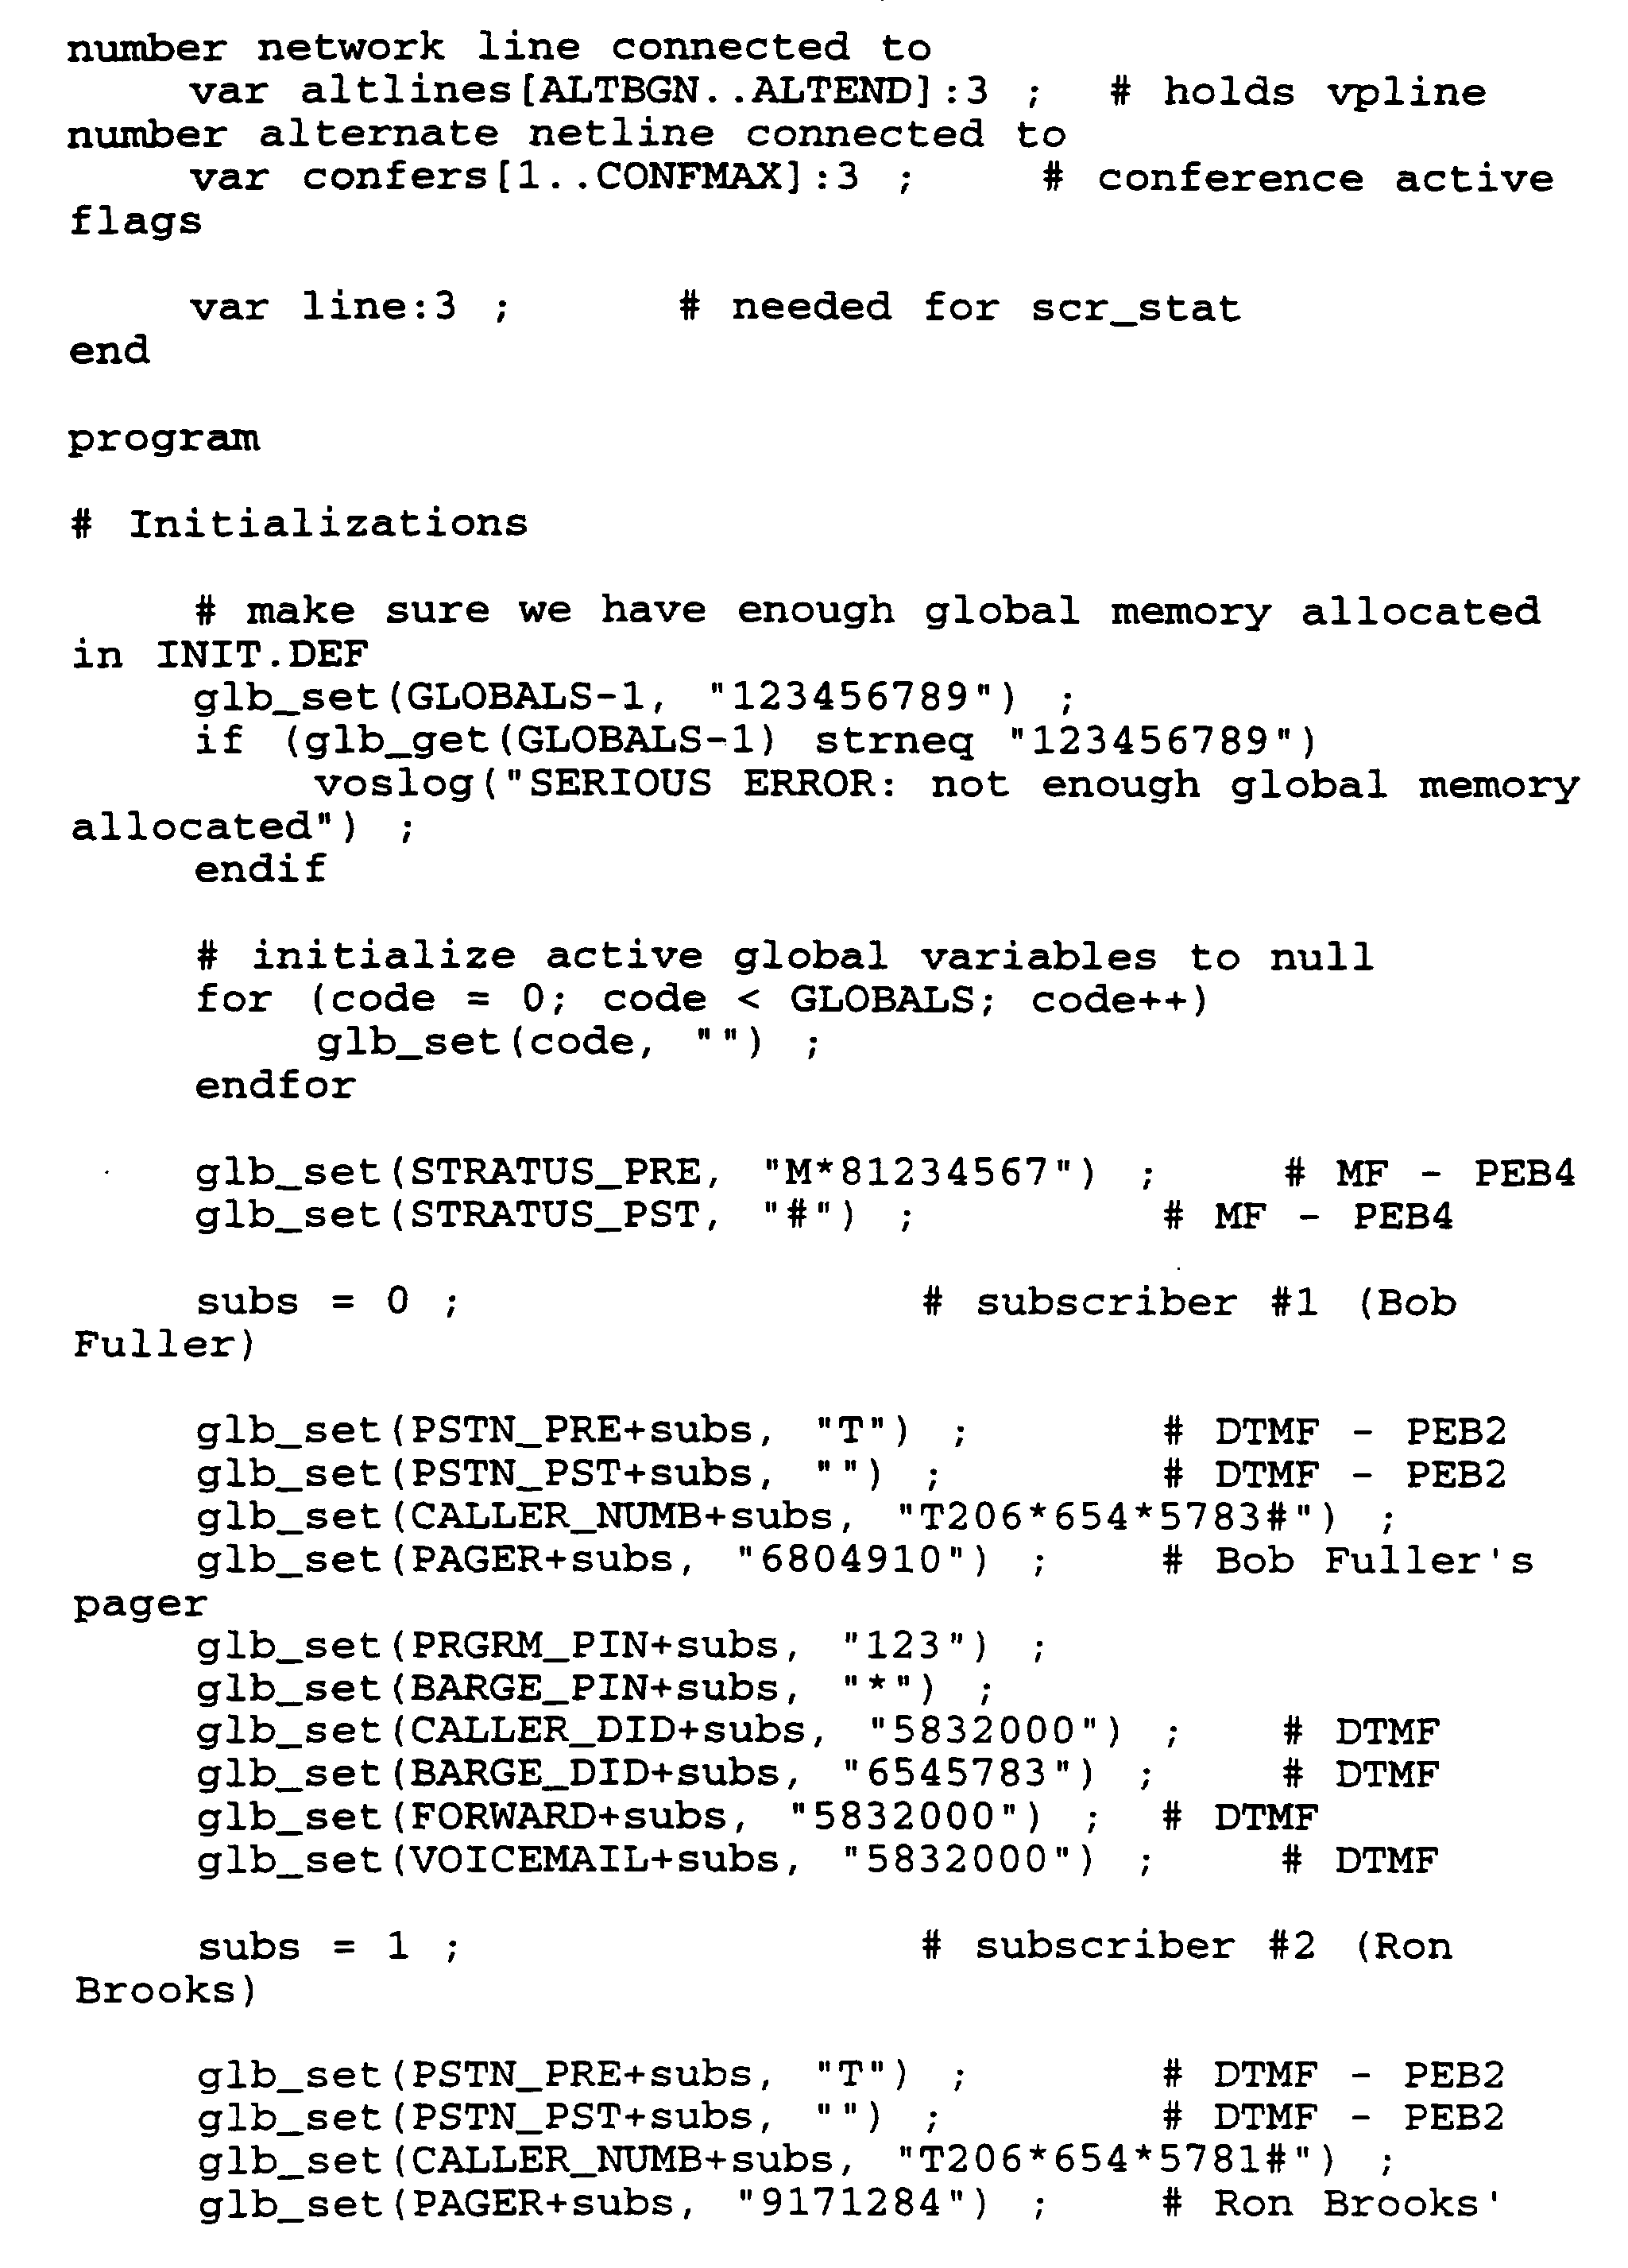 WO1996009731A1 - Computer controlled paging and telephone